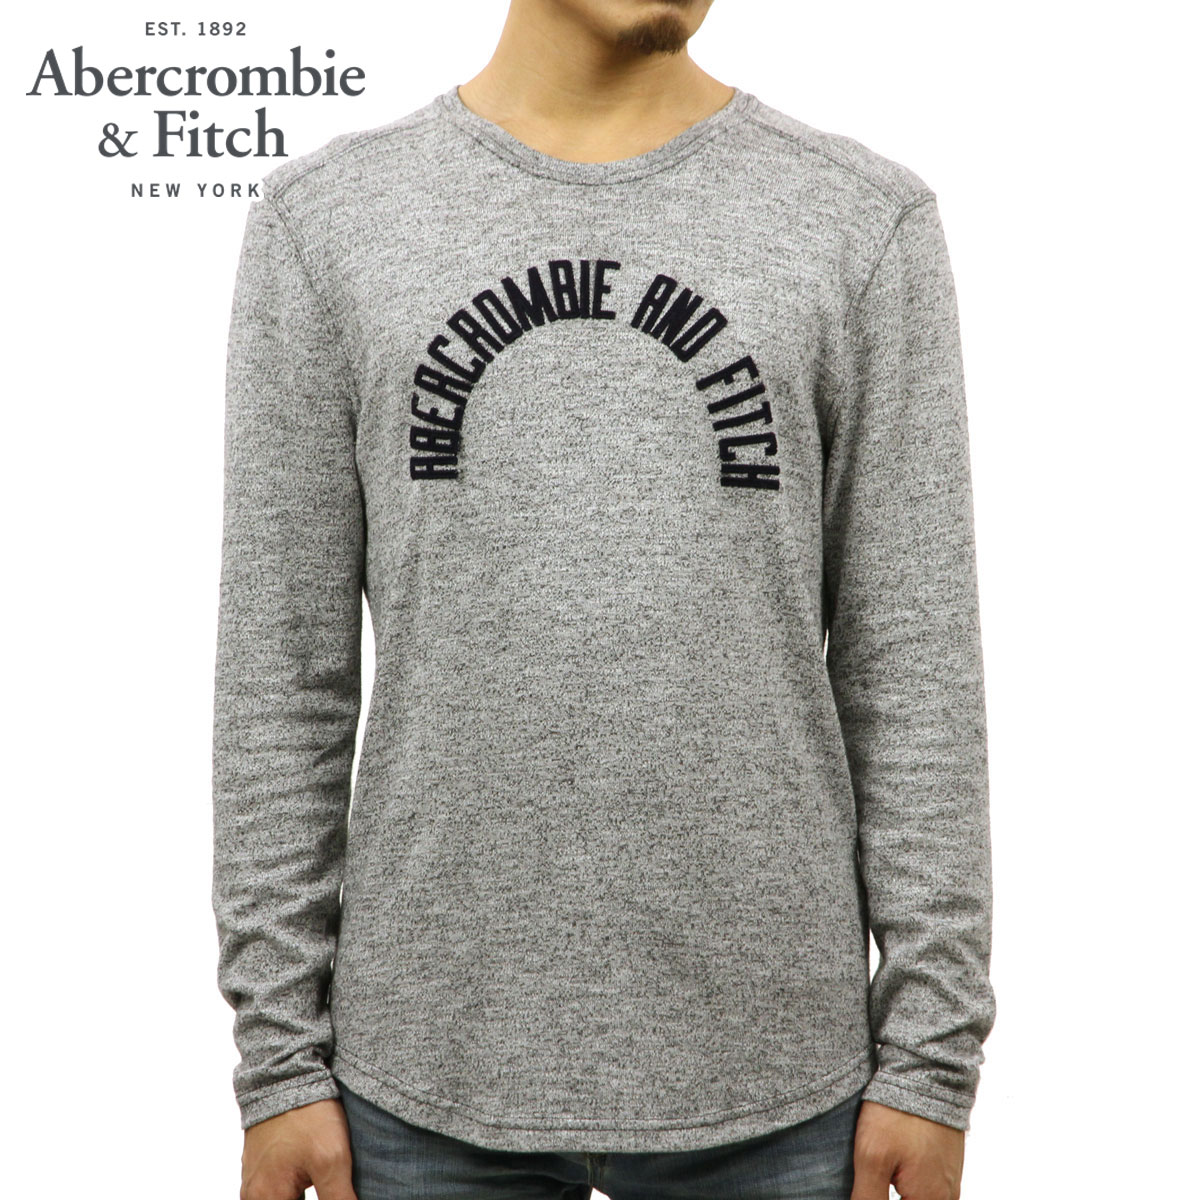 ba9df227 Rakuten Ichiba shop MIXON: ABBA black Abercrombie & Fitch regular  article men long sleeves T-shirt LONG SLEEVE GRAPHIC TEE 123-238-2174-112 |  Rakuten ...